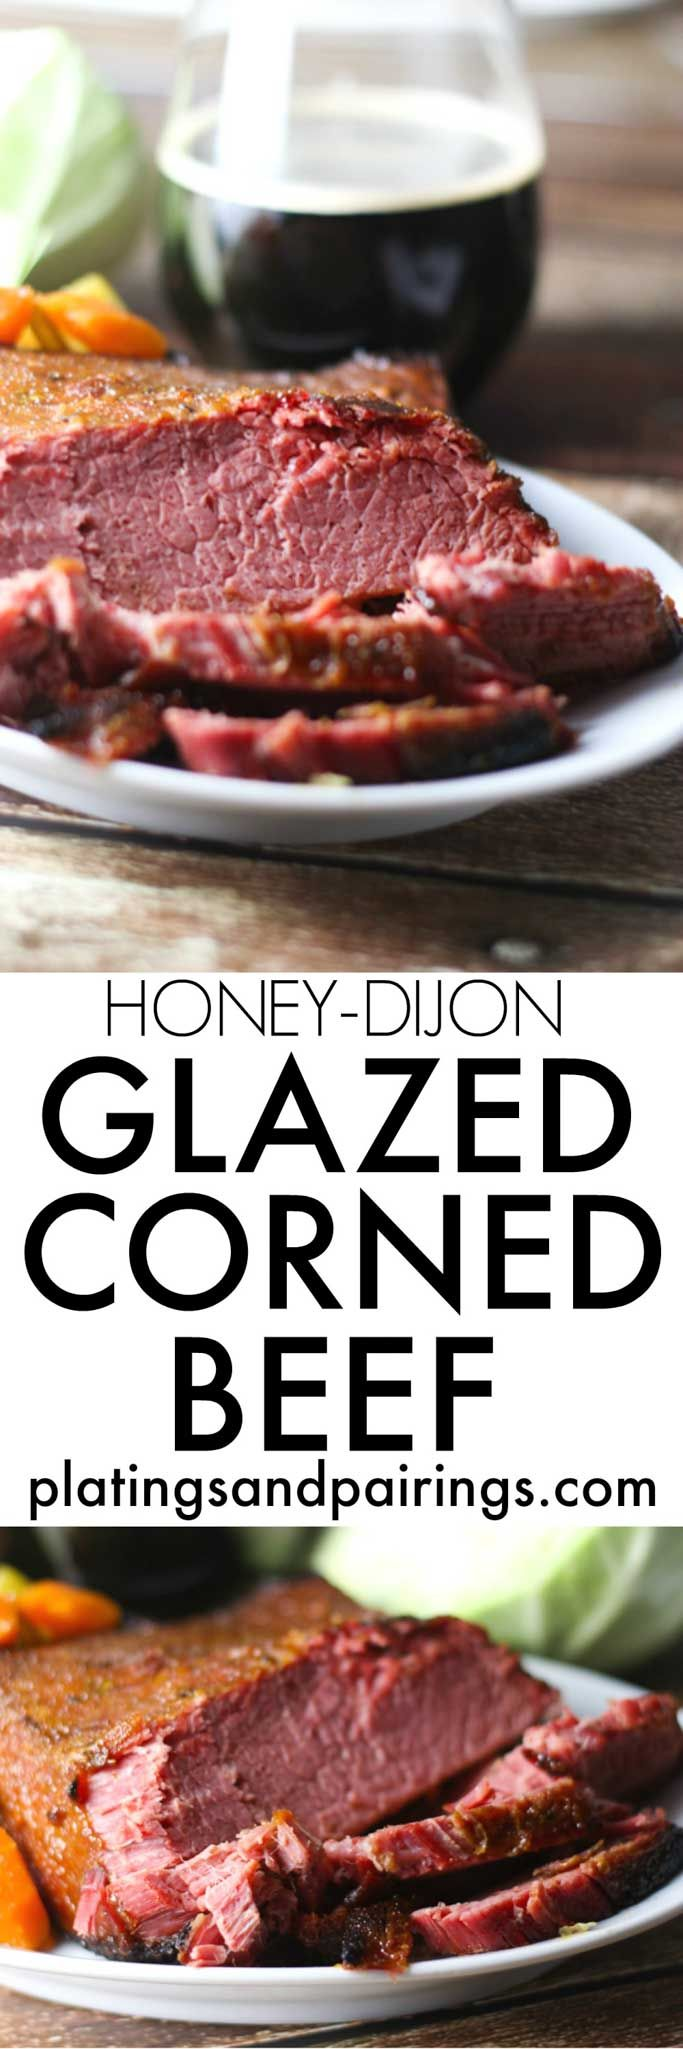 This Glazed Corned Beef & Cabbage is made in the slow cooker and finished off under the broiler with a honey-dijon glaze, giving it a nice crispy crust.